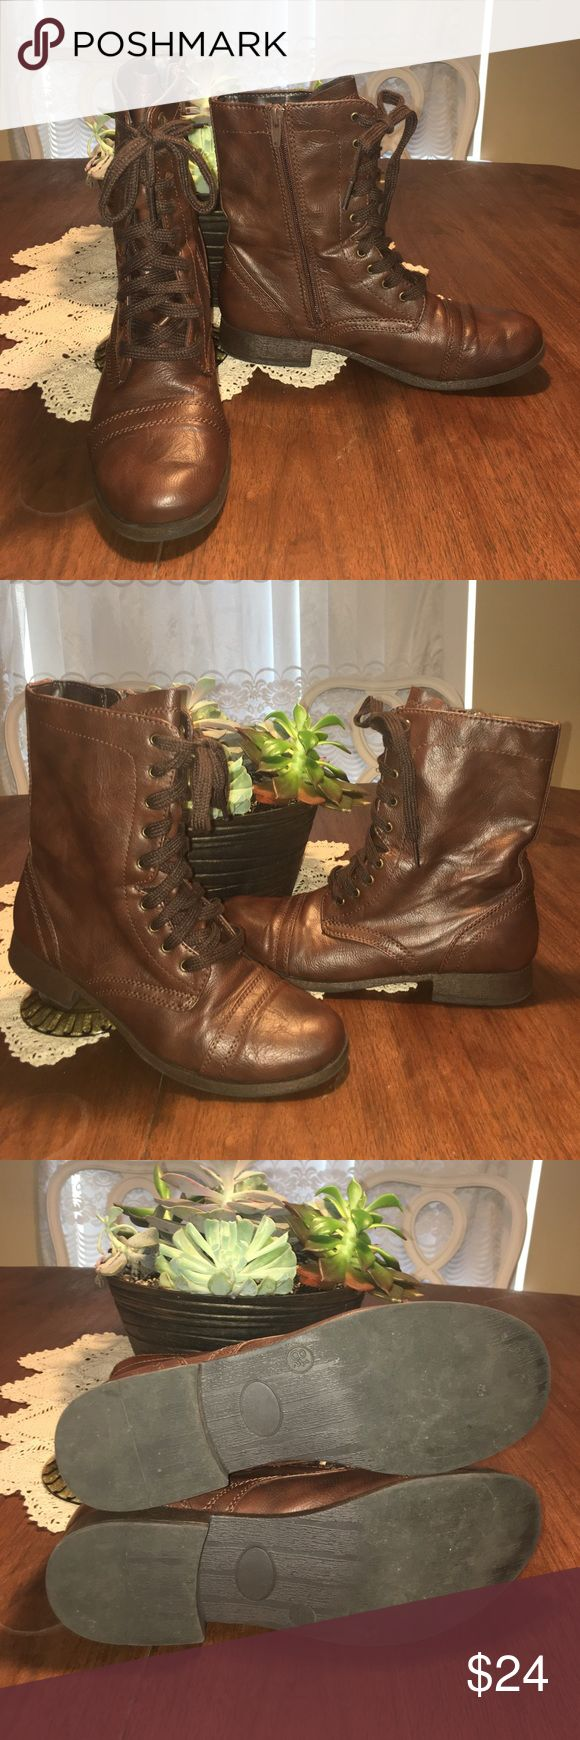 Brown combat boots Kohl's brown synthetic leather boots! Worn but in great condition. Size 8.5 Shoes Combat & Moto Boots